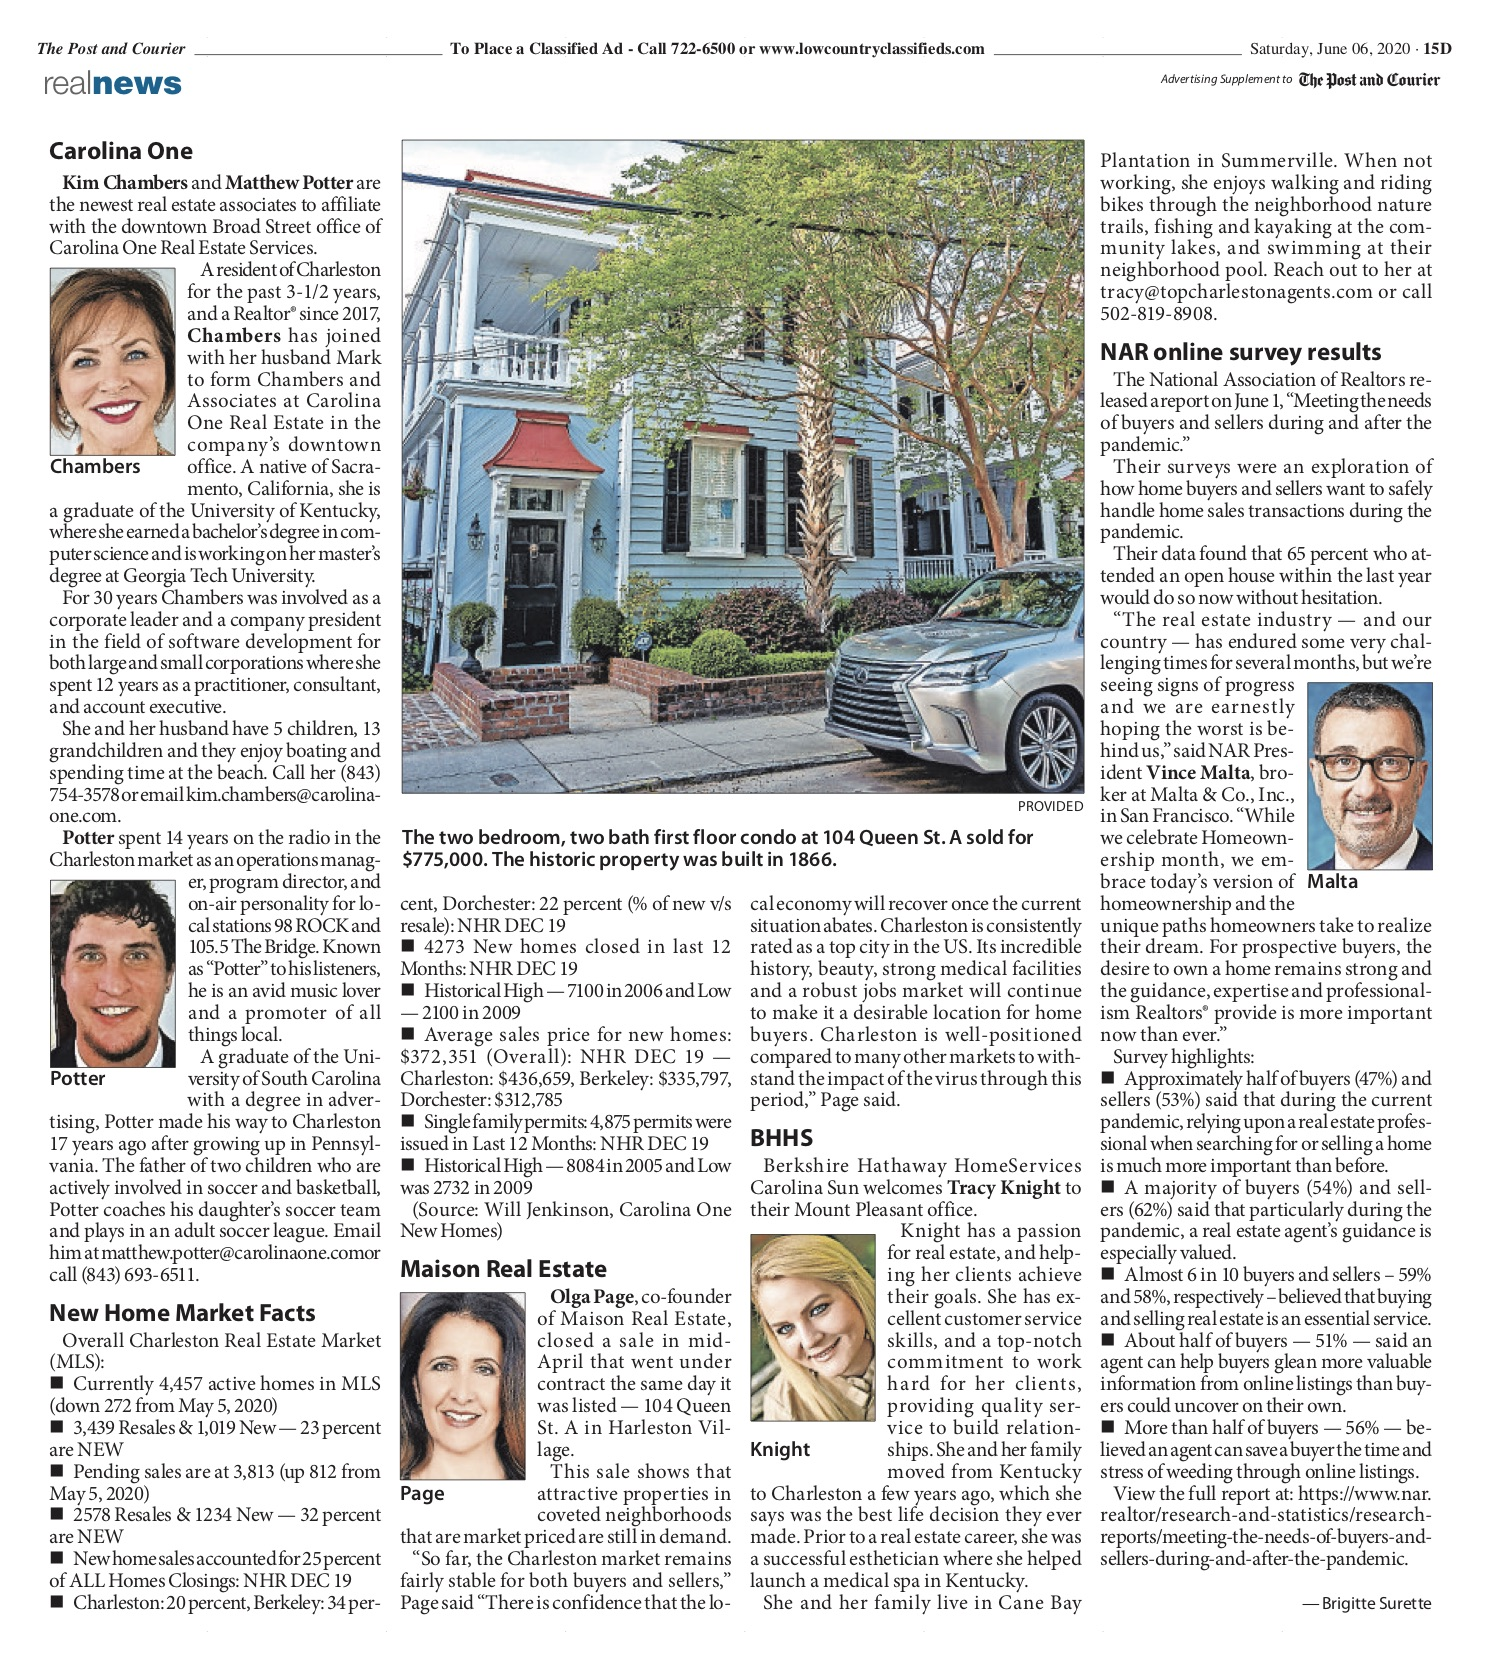 Post and Courier's Real Estate News highlights Olga Page